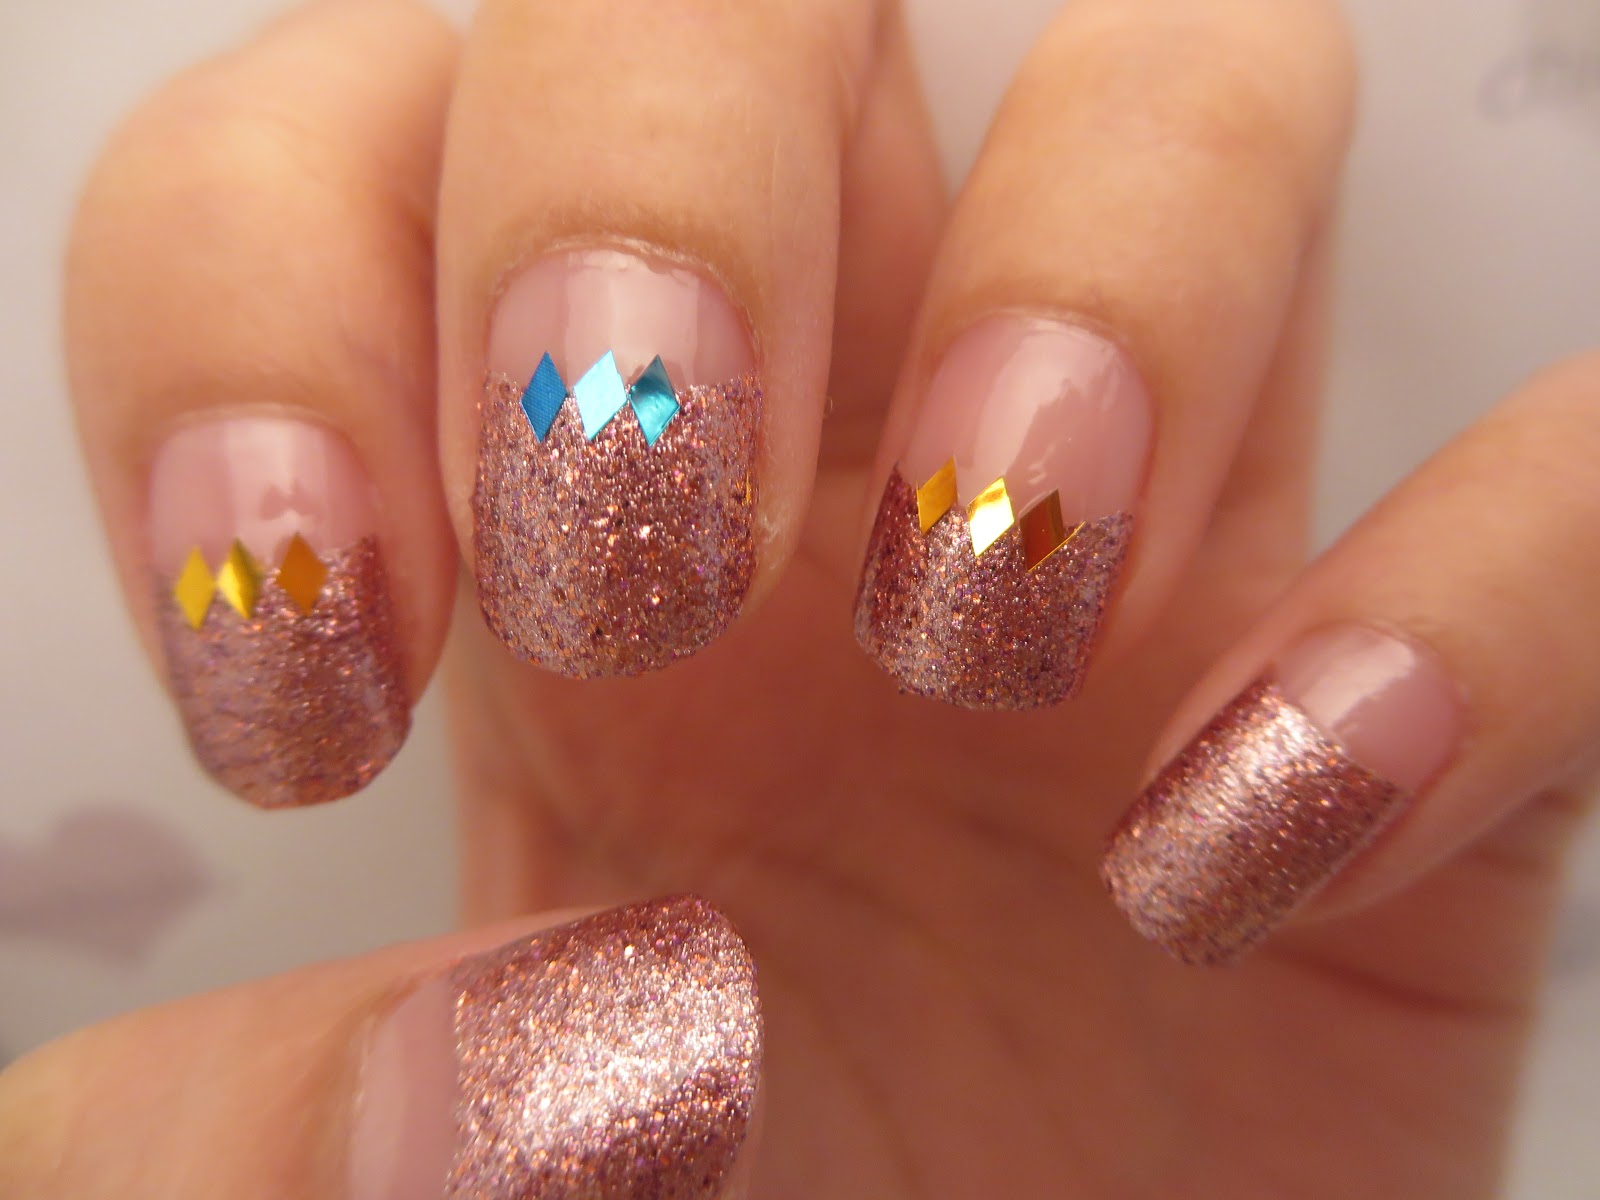 Sally hansen nail polish strips glitter french mani chichicho i havent painted my nails for months there are a few times when i sat myself down picked out some nail polishes that i wanted to use solutioingenieria Gallery